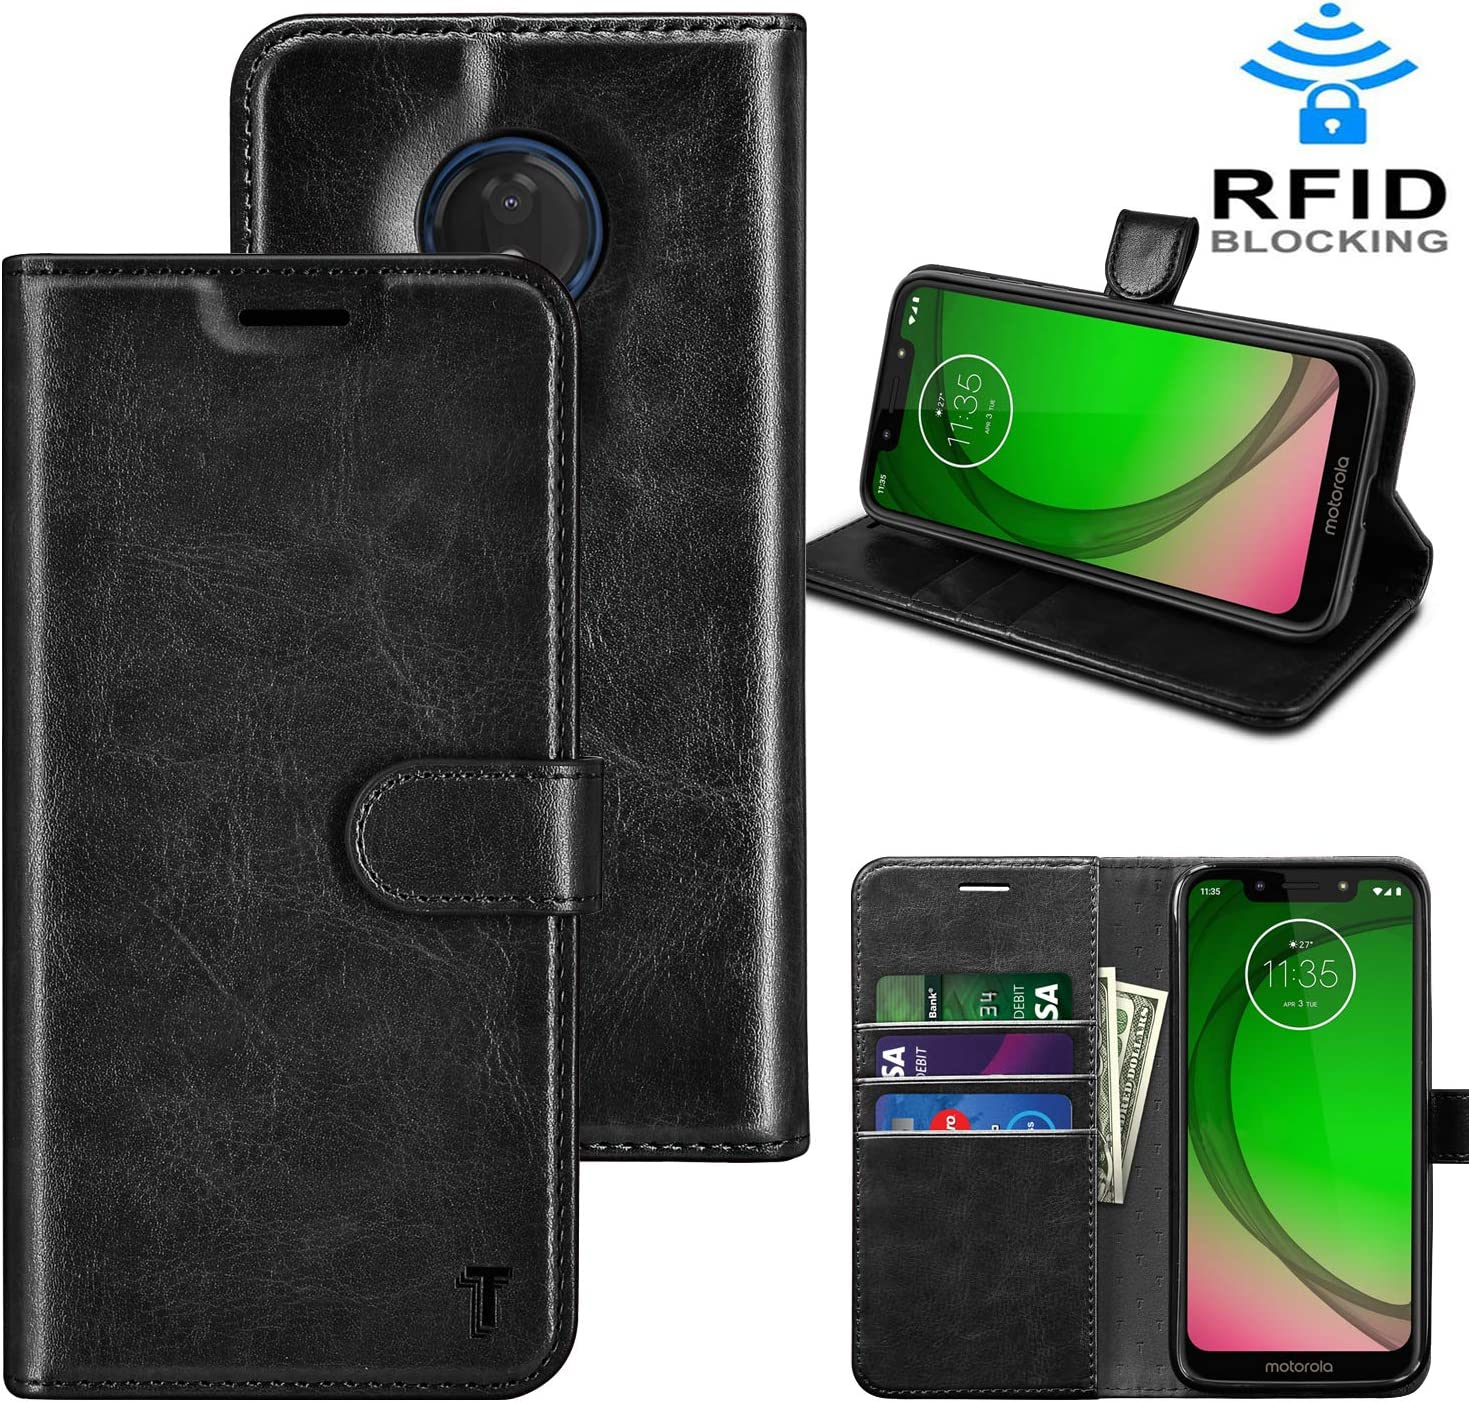 Takfox Moto G7 Power Case, Motorola G7 Supra/G7 Optimo Maxx XT1955DL/G7 Power Case Wallet PU Leather Flip Cover w/Card Slots ID Credit Card Holder [RFID Blocking][Kickstand] Magnetic Phone Case-Black